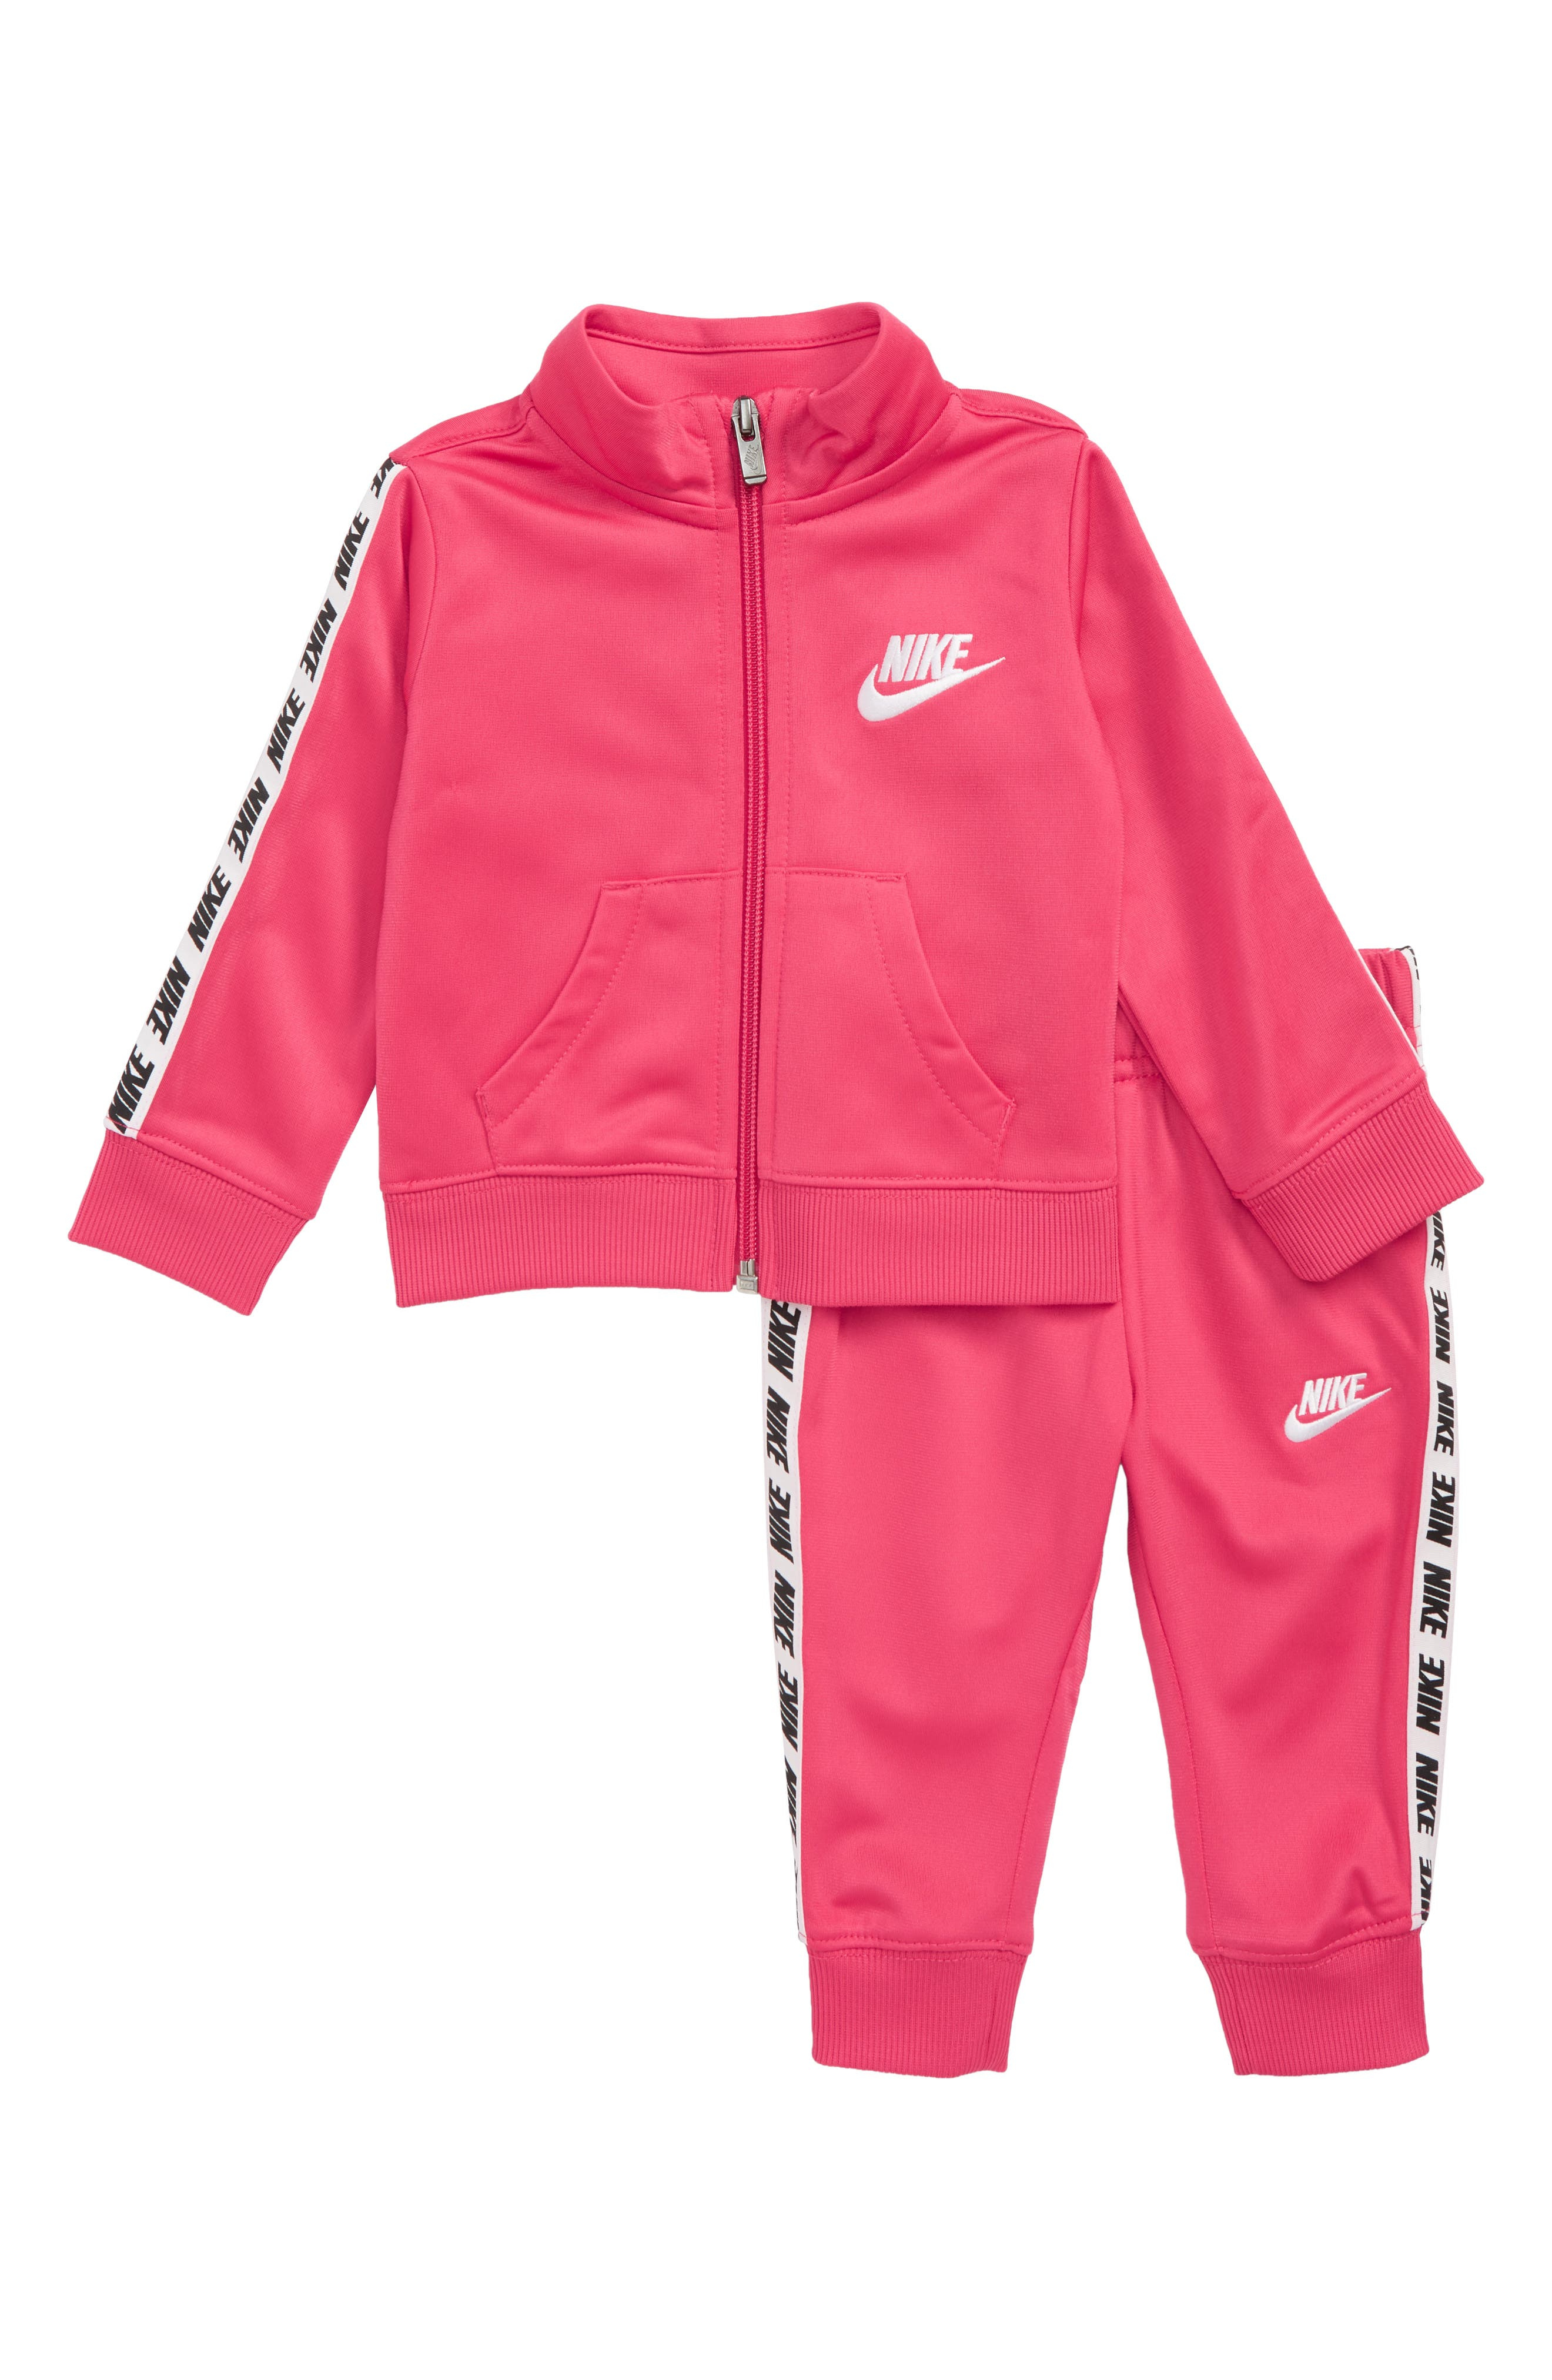 Image of Nike Tricot Track Suit Set